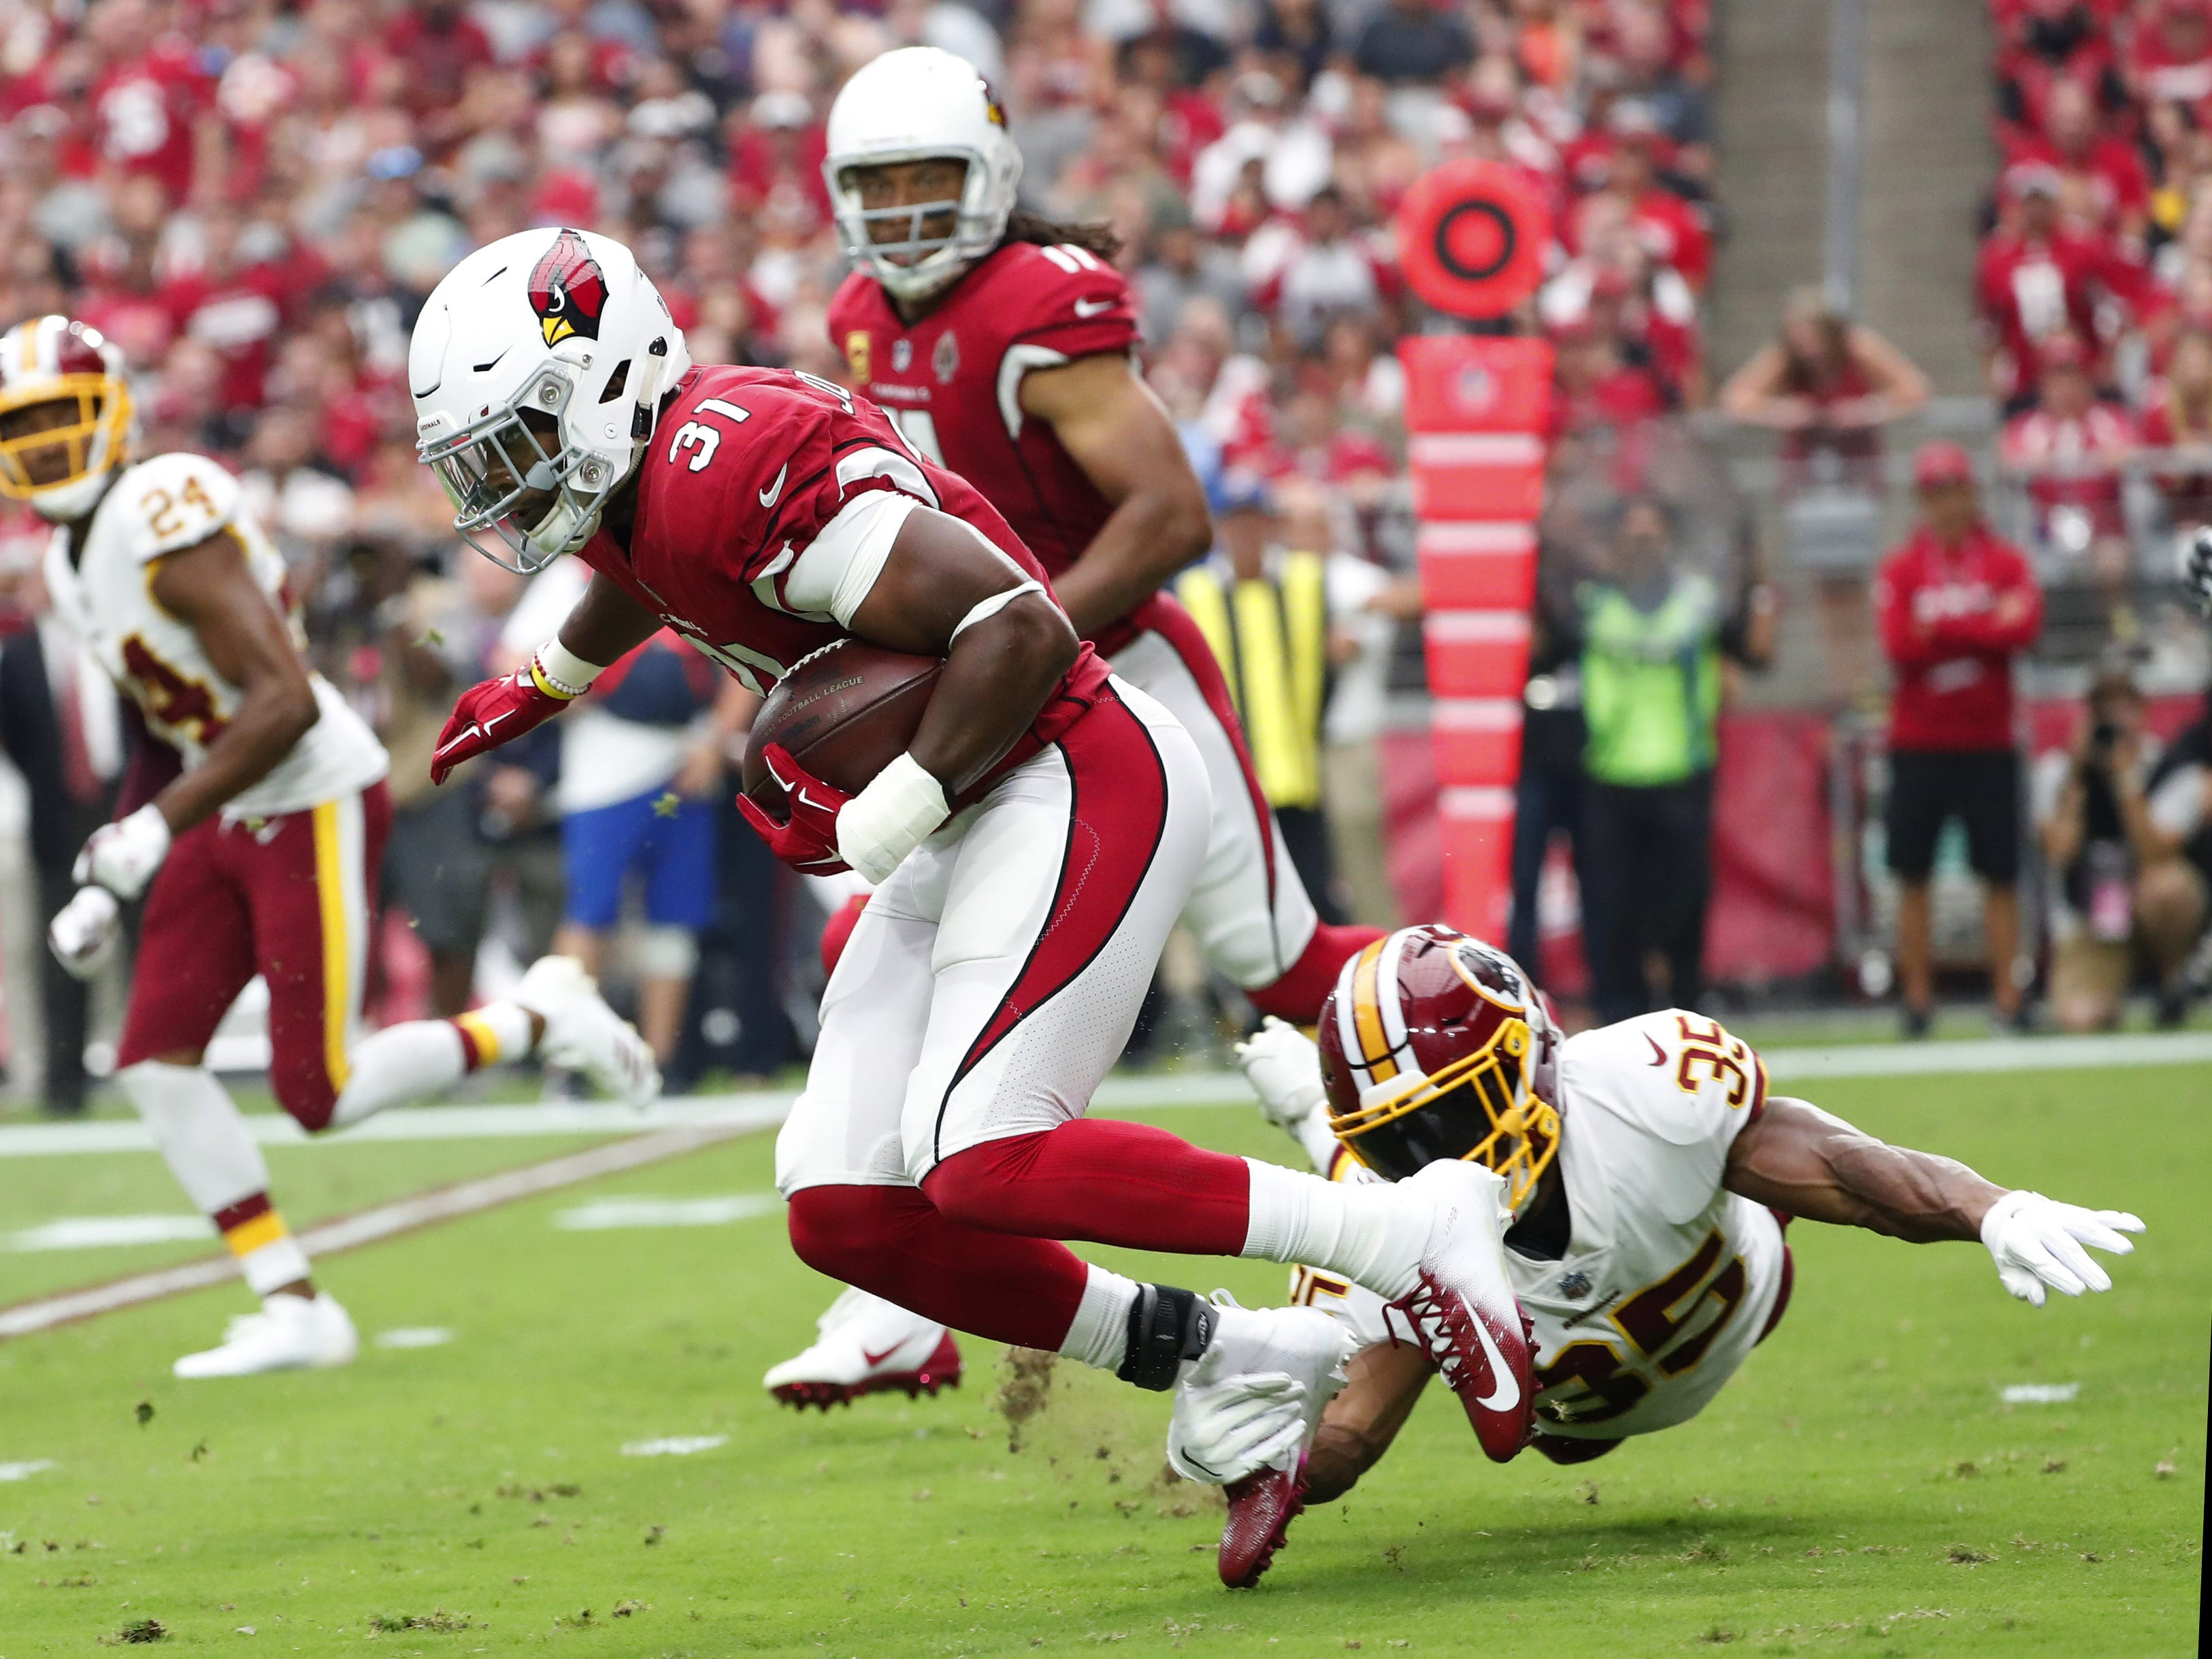 Arizona Cardinals running back David Johnson (31) is tackled by Washington Redskins defensive back Montae Nicholson (35) during the first quarter at State Farm Stadium in Glendale, Ariz. September 9. 2018.